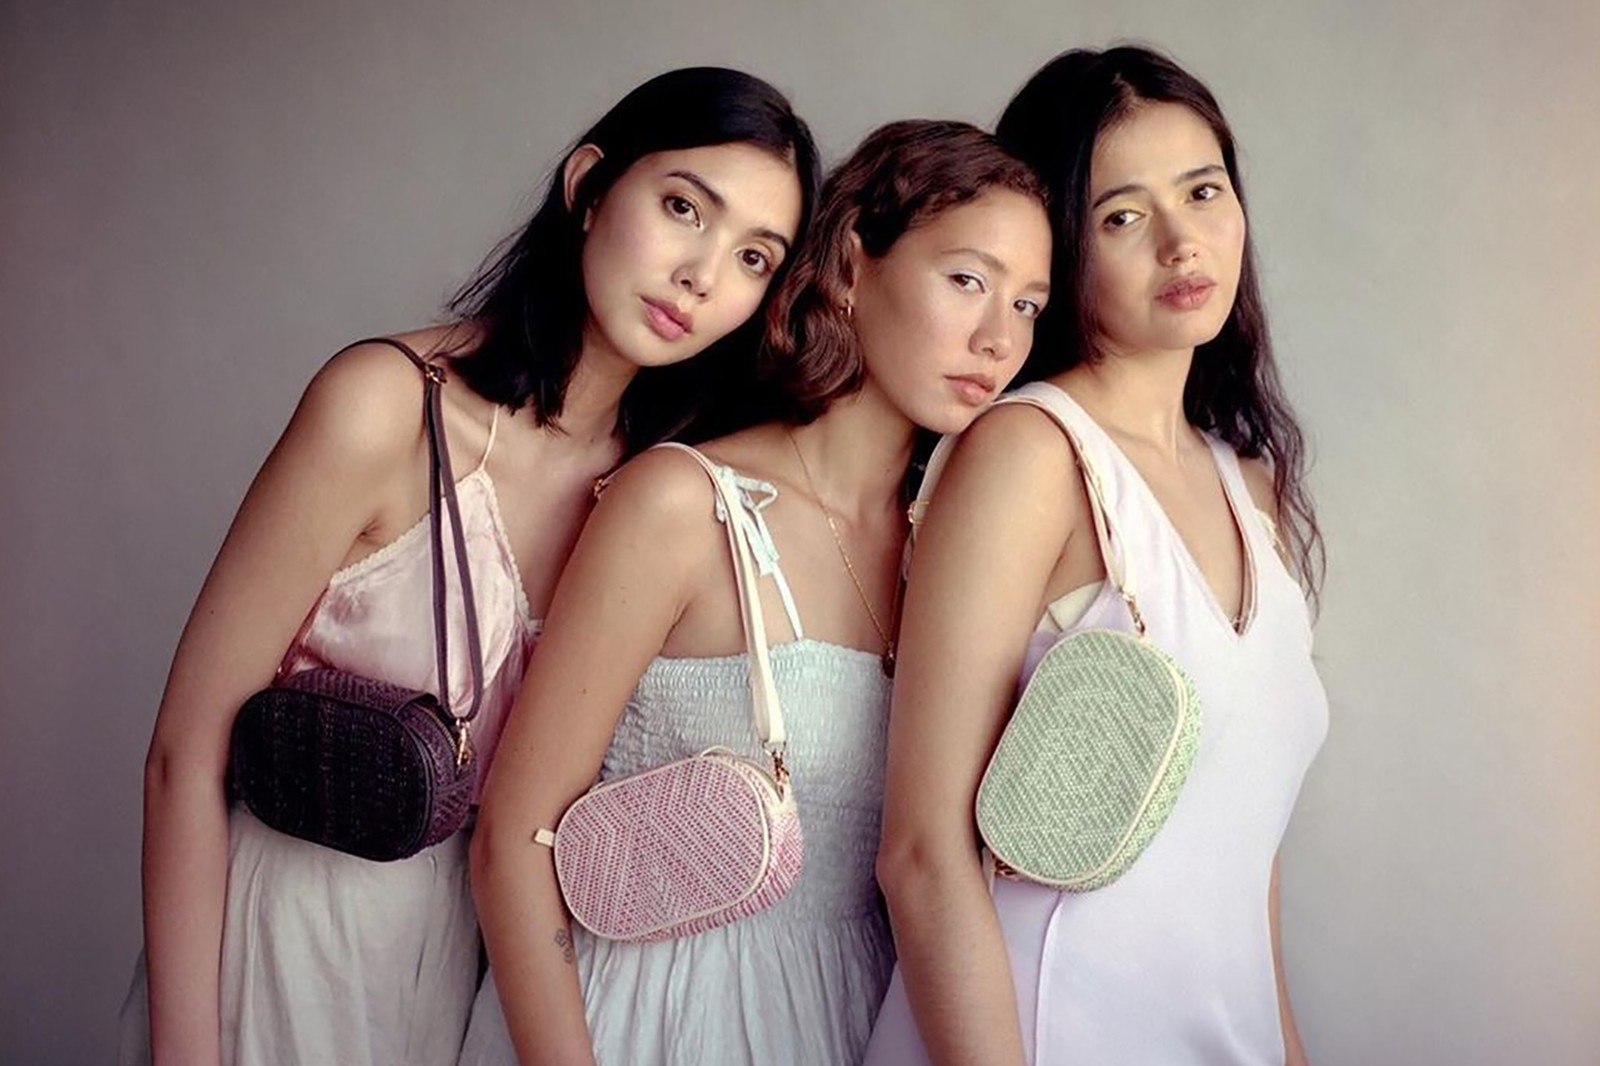 halohalo cara rocco sumabat handbags furniture homeware sustainability manila philippines designer